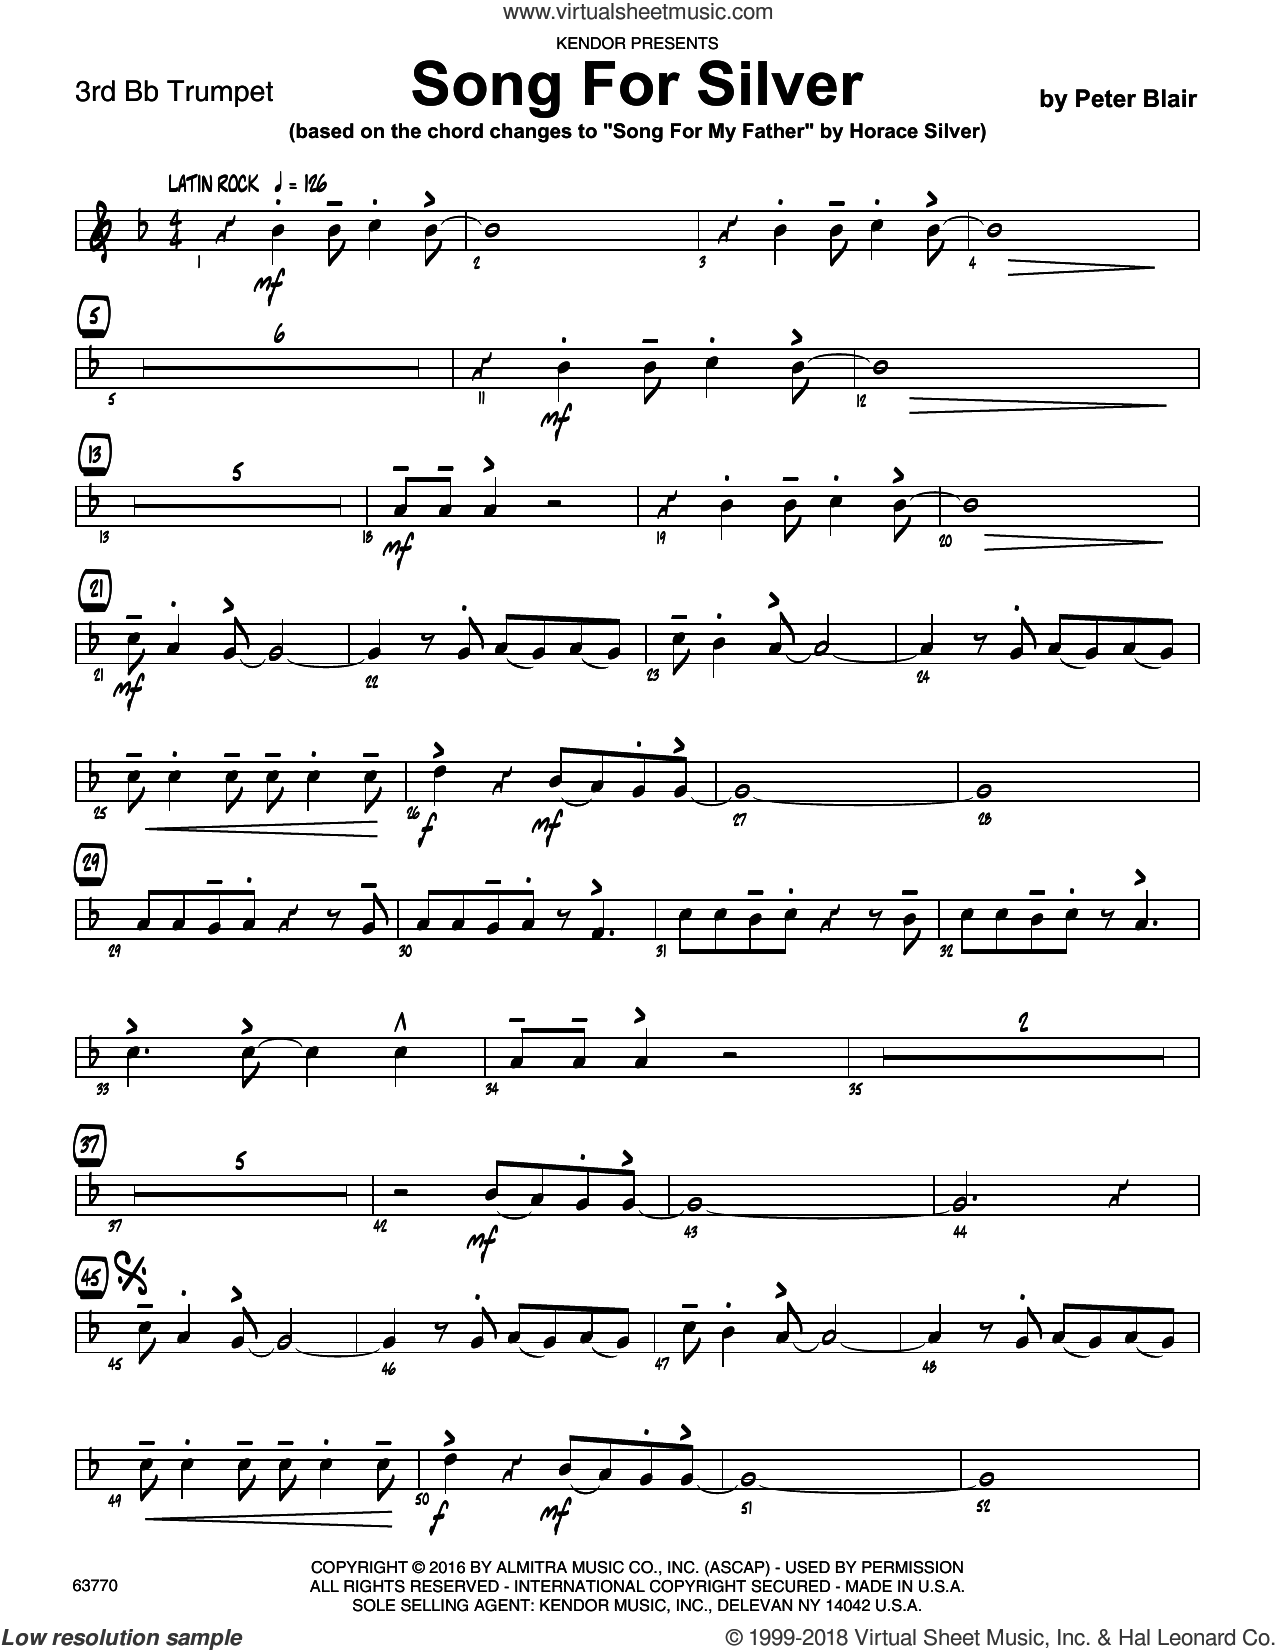 Song For Silver (based on Song For My Father by Horace Silver) sheet music for jazz band (3rd Bb trumpet) by Peter Blair. Score Image Preview.